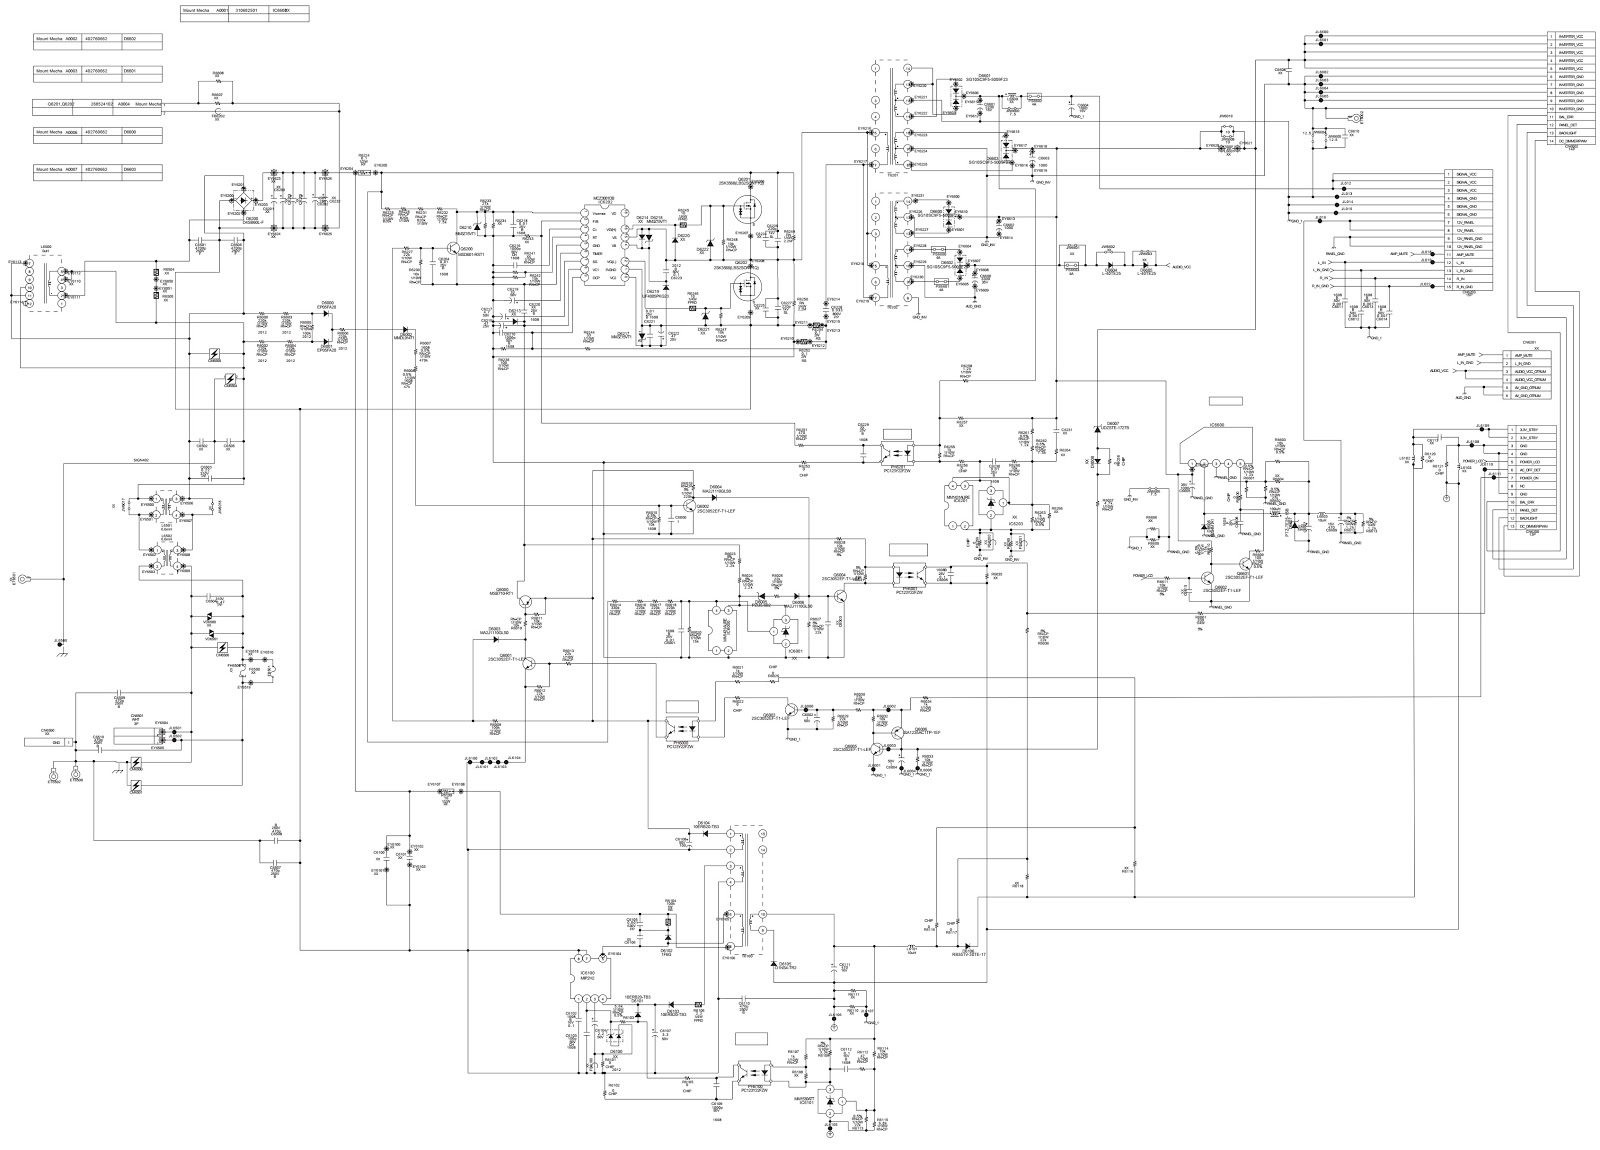 small resolution of kdl37v4000 sony lcd tv smps circuit diagram 1 876 635 12 se2ag